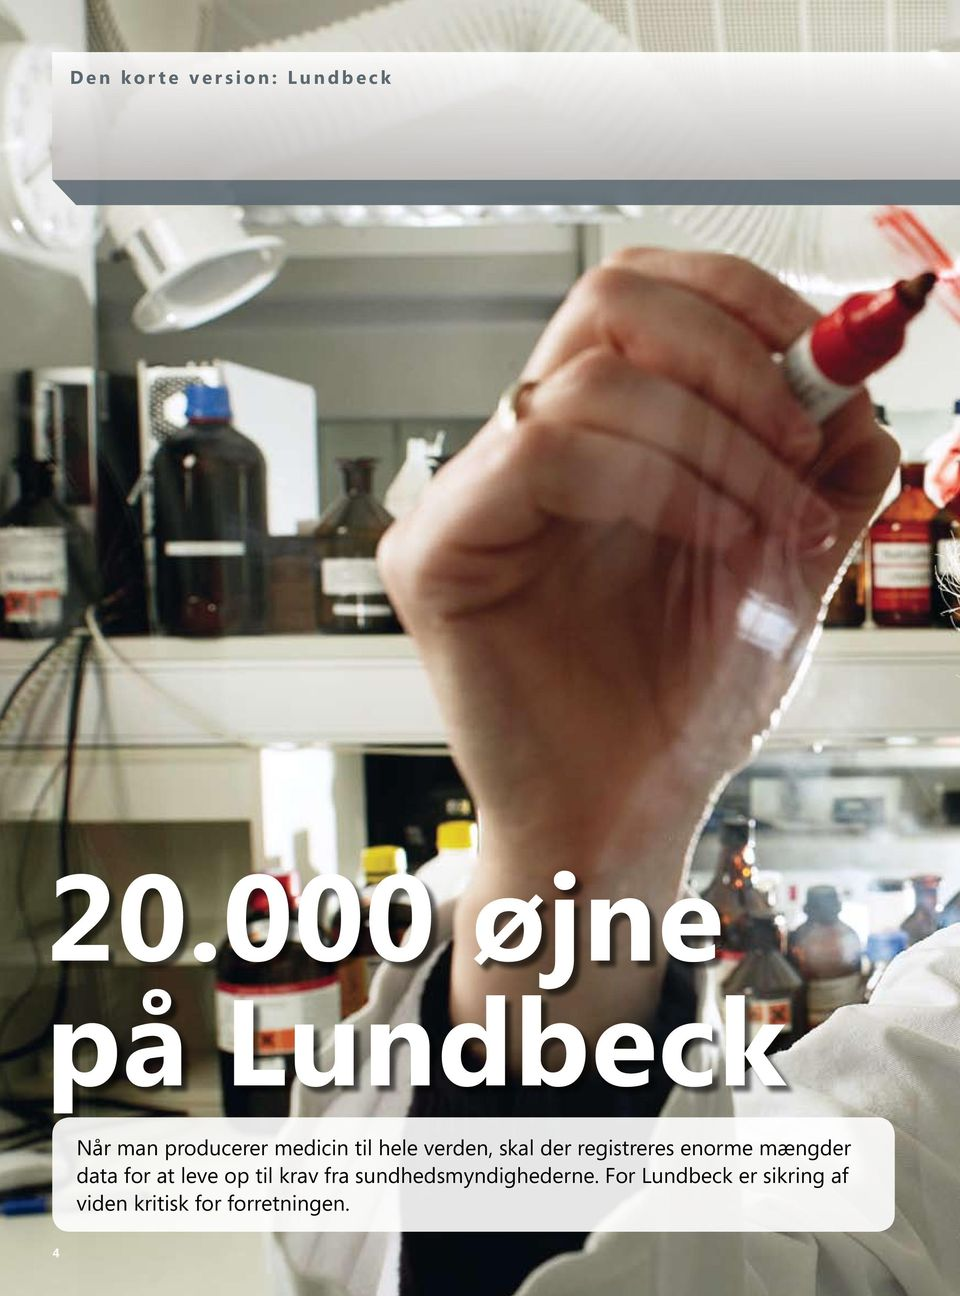 verden, skal der registreres enorme mængder data for at leve